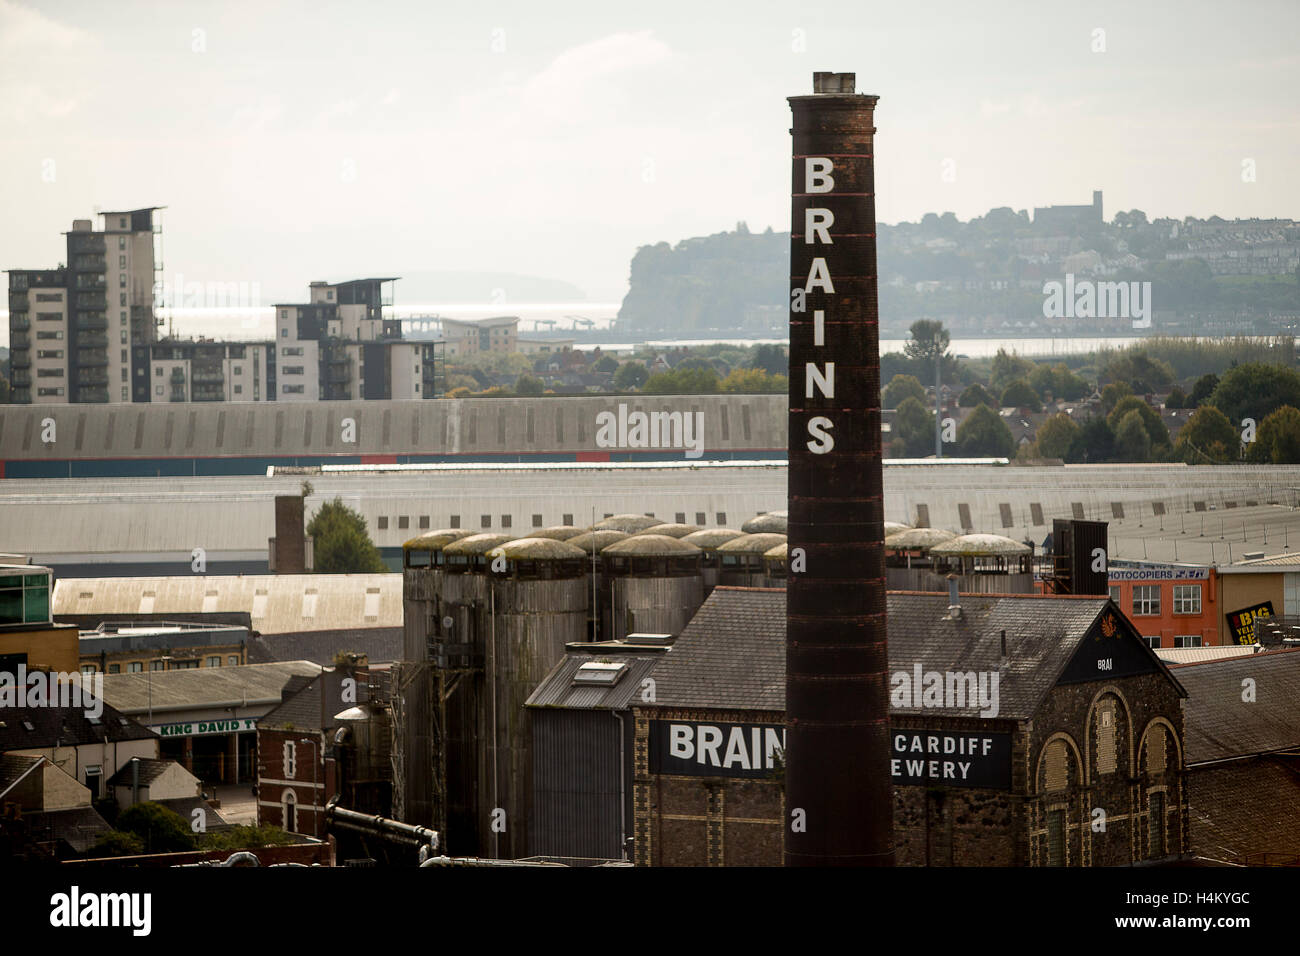 General view of Brains Brewery in Cardiff, South Wales. - Stock Image